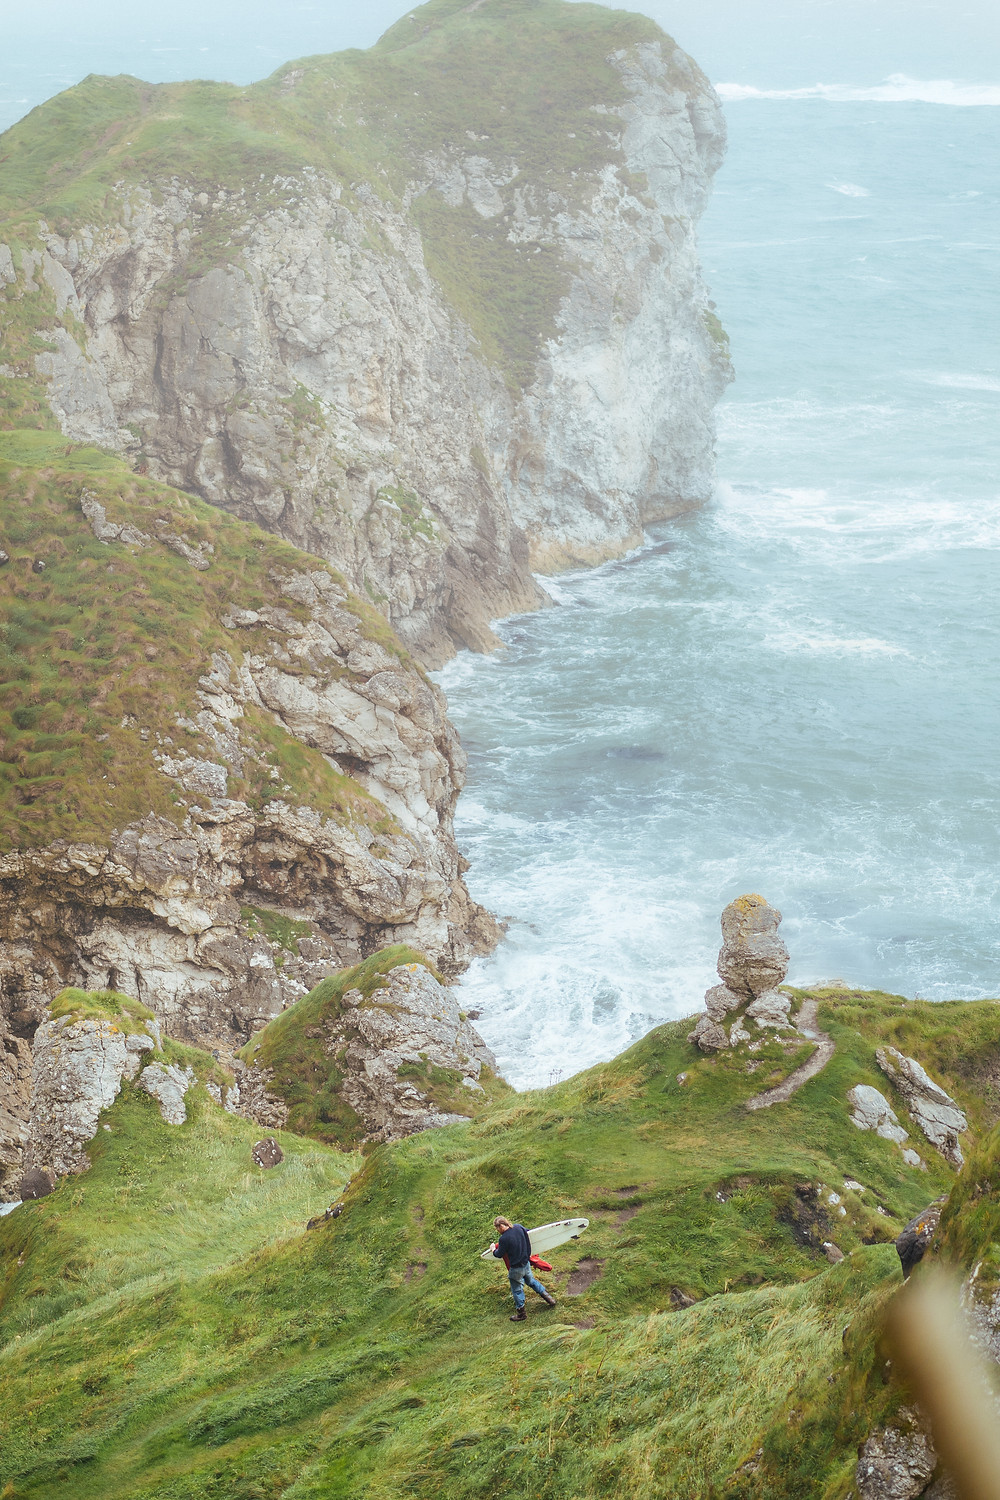 Al Mennie, Surfing, kinbane head, ireland, ben ono